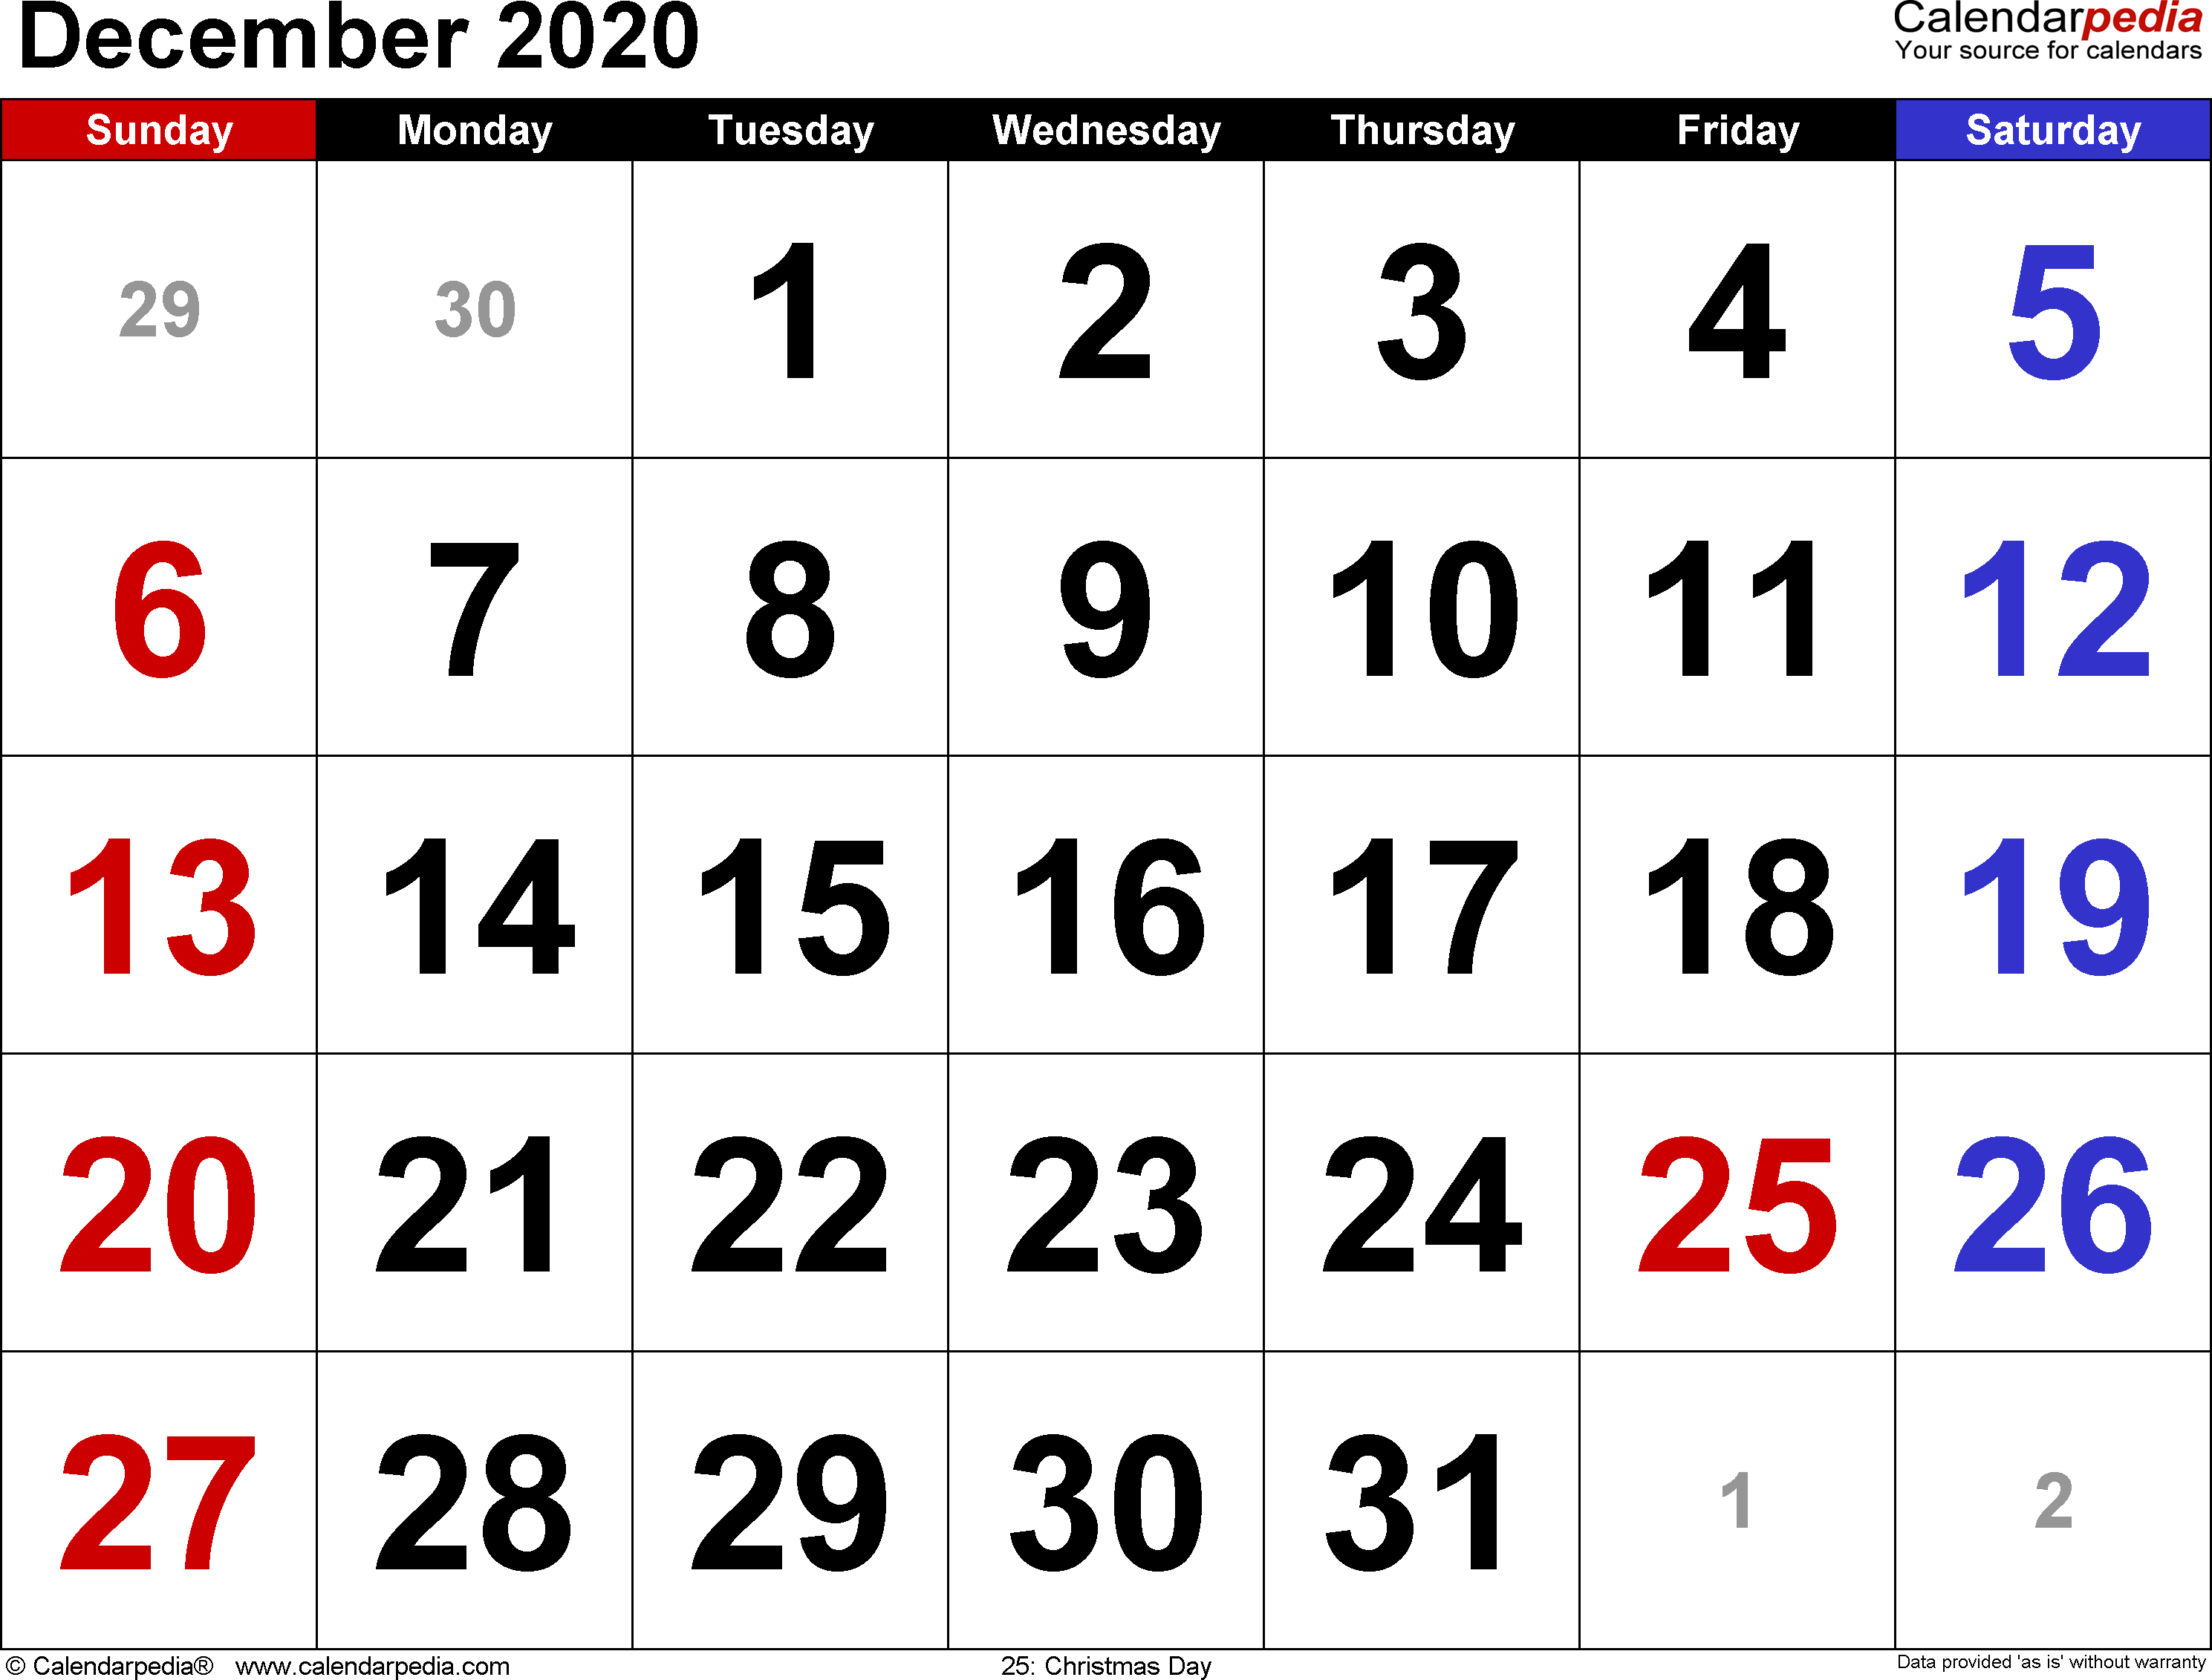 December 2020 Appointment Calendar Template December 2020 Calendars for Word, Excel & PDF